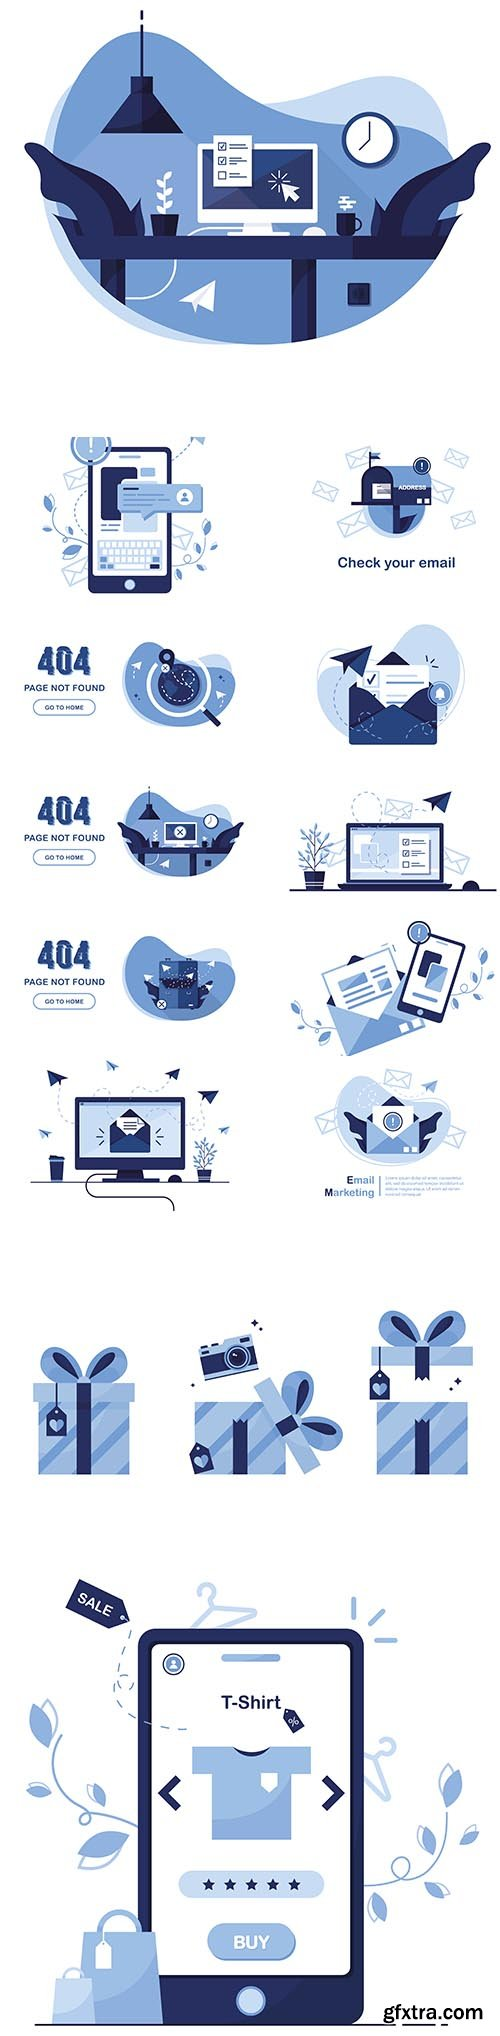 404 Error Page Found and Email Marketing Message Concept